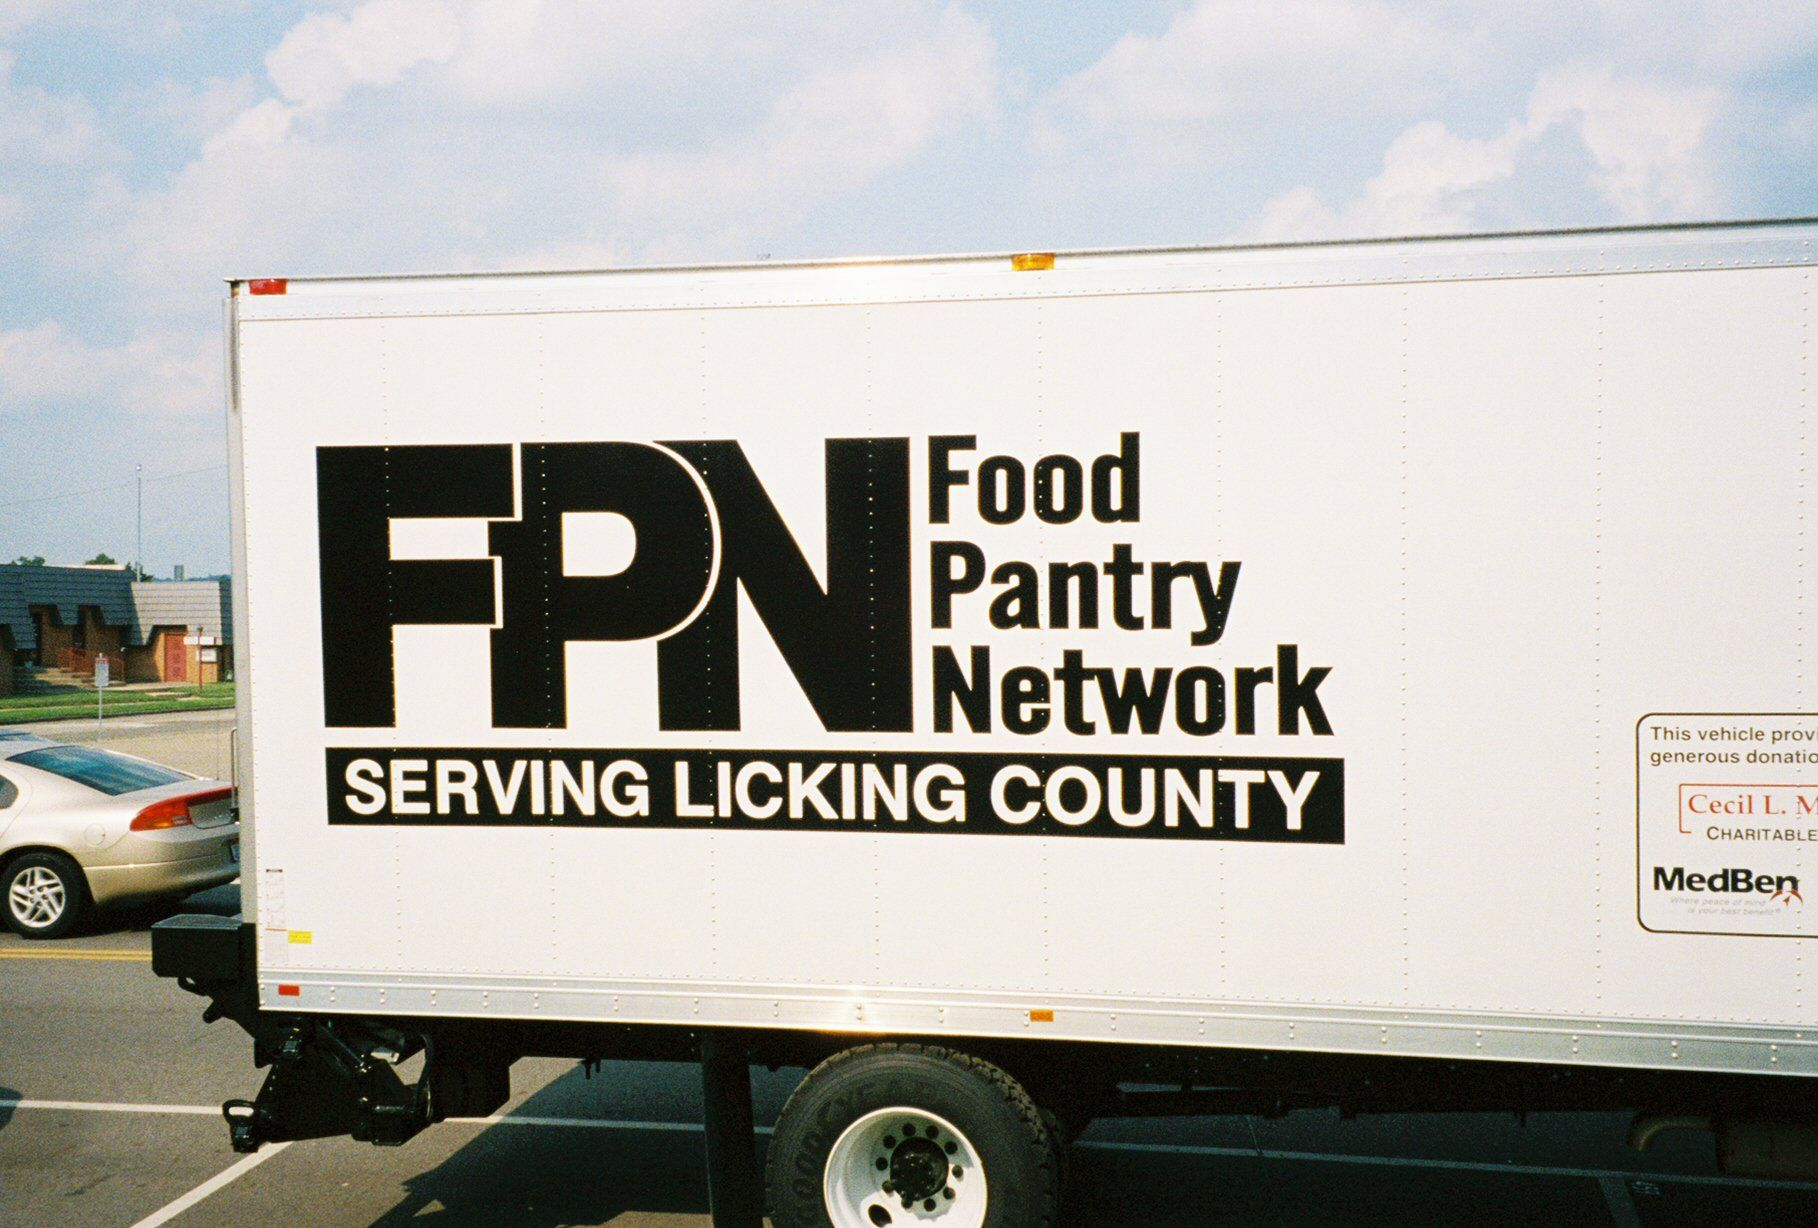 Food Pantry Network of Licking County